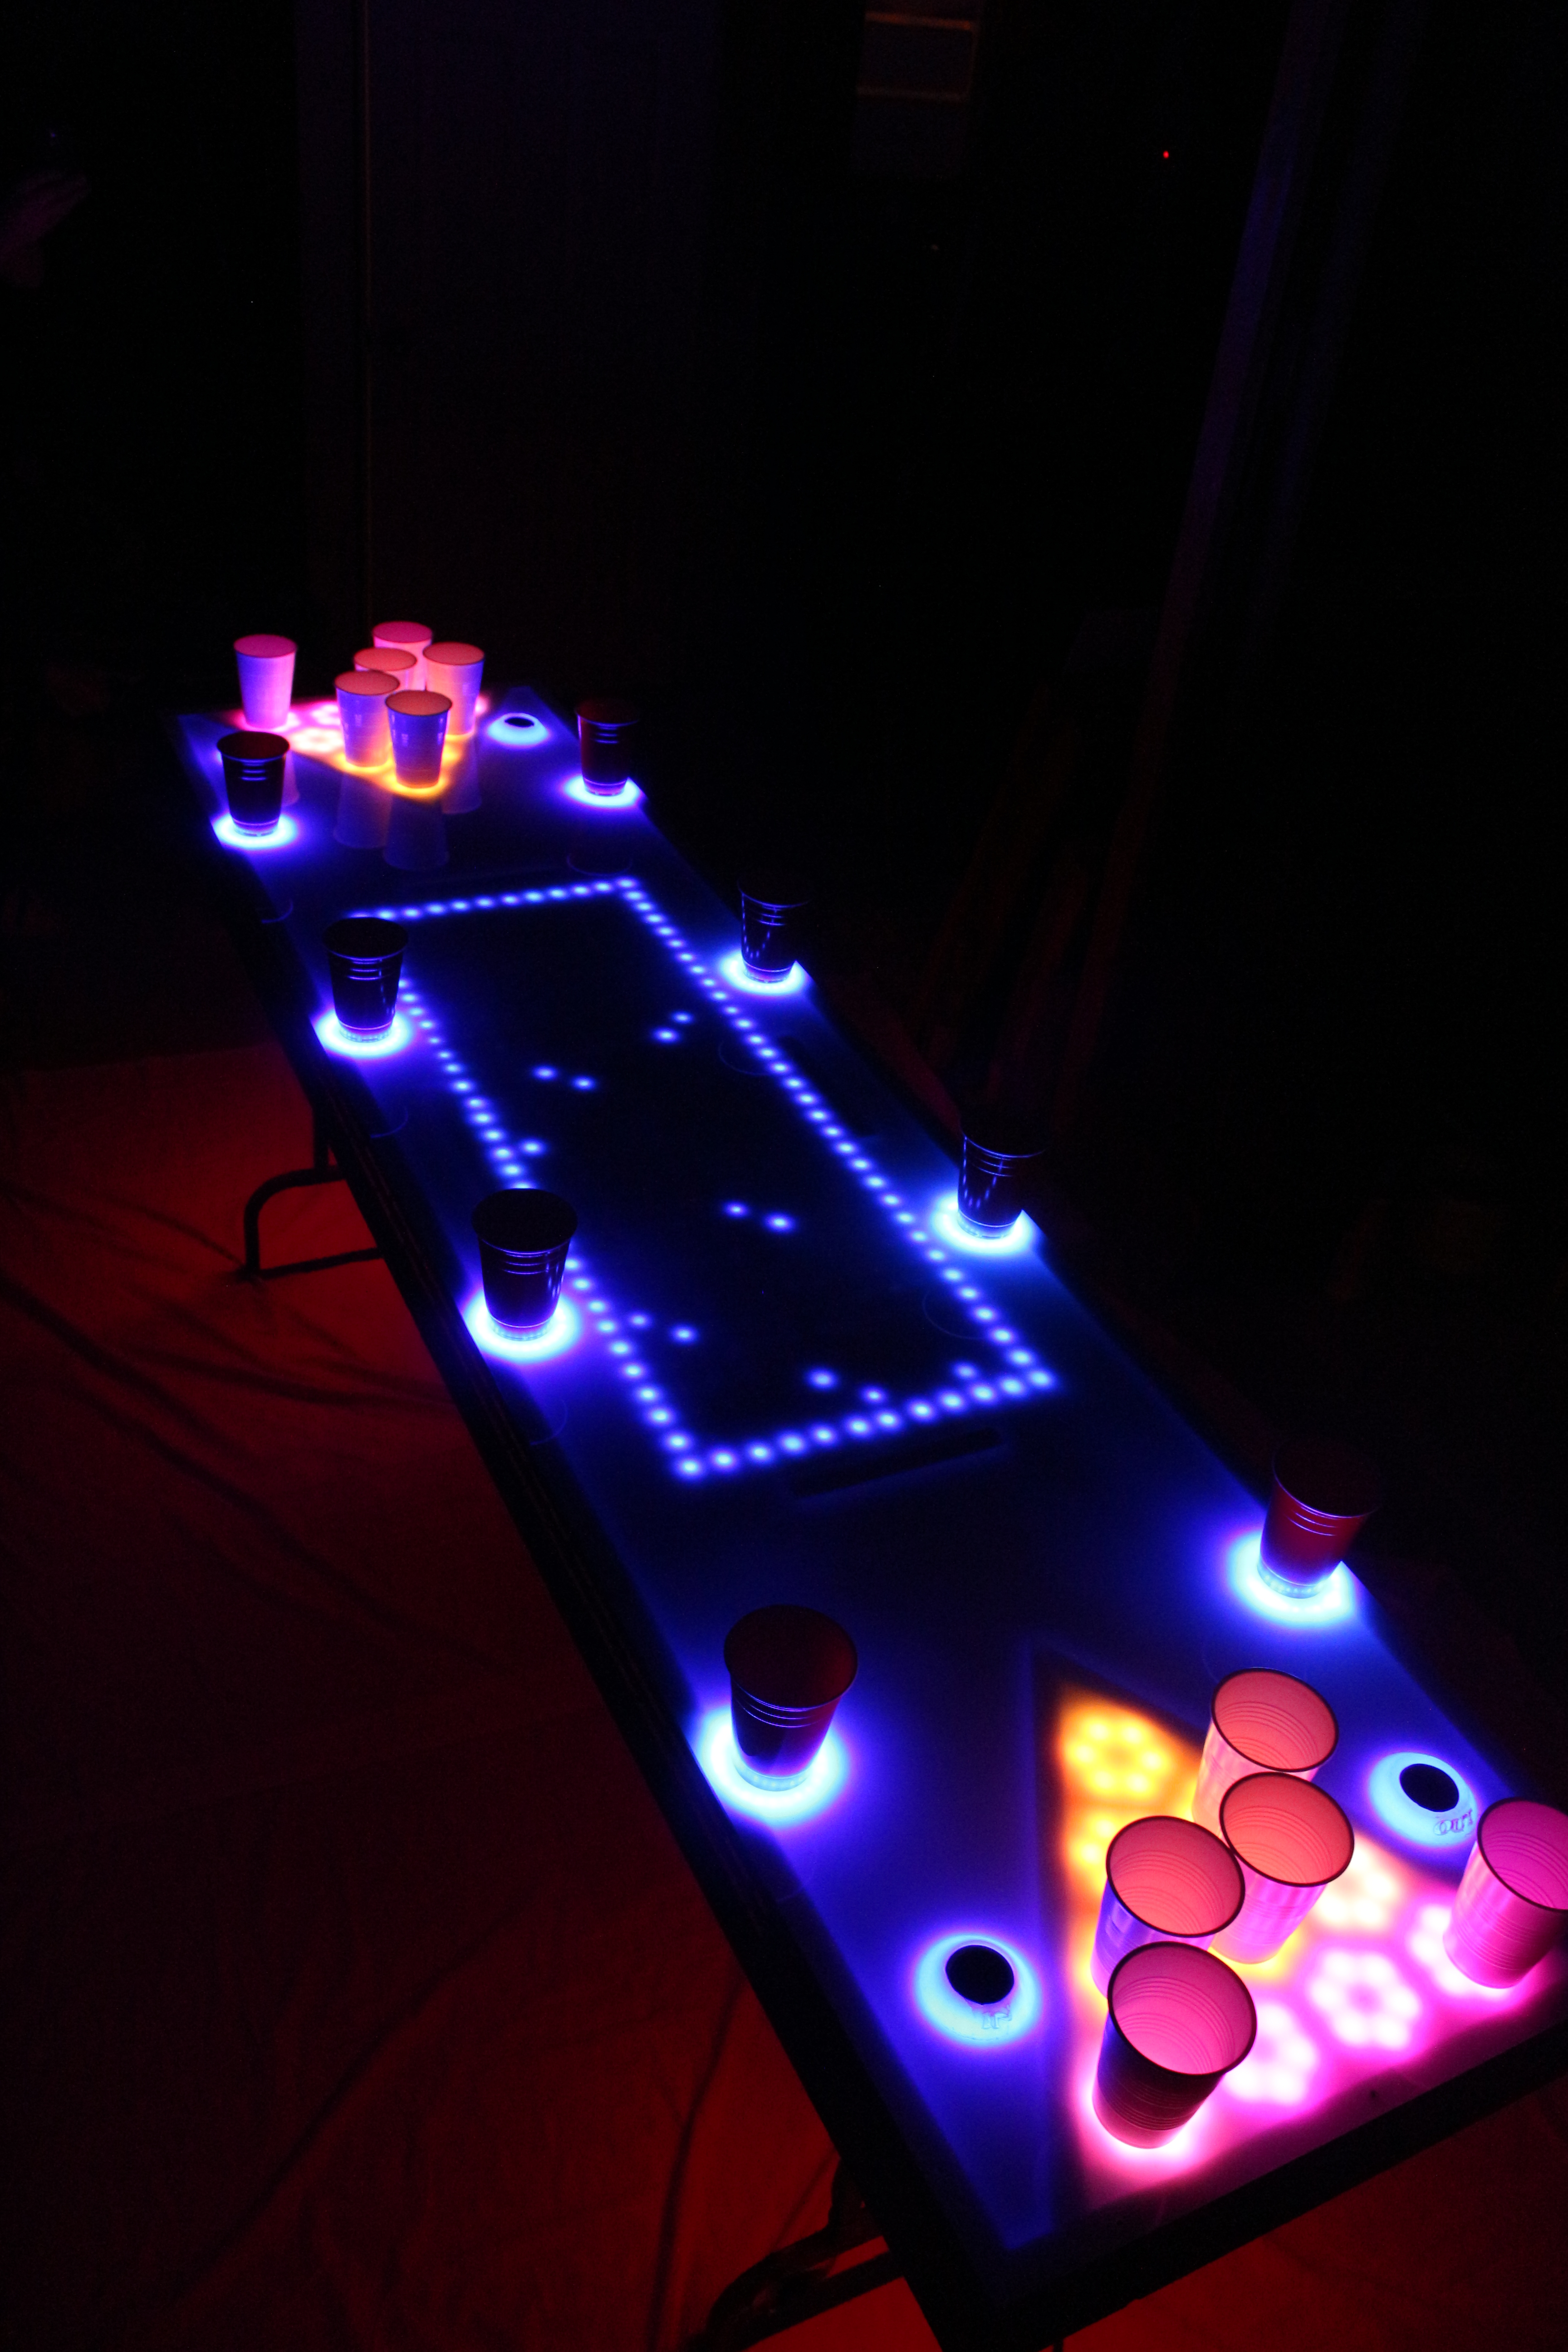 Interactive led beer pong table x5 chexal - Interactive led beer pong table ...